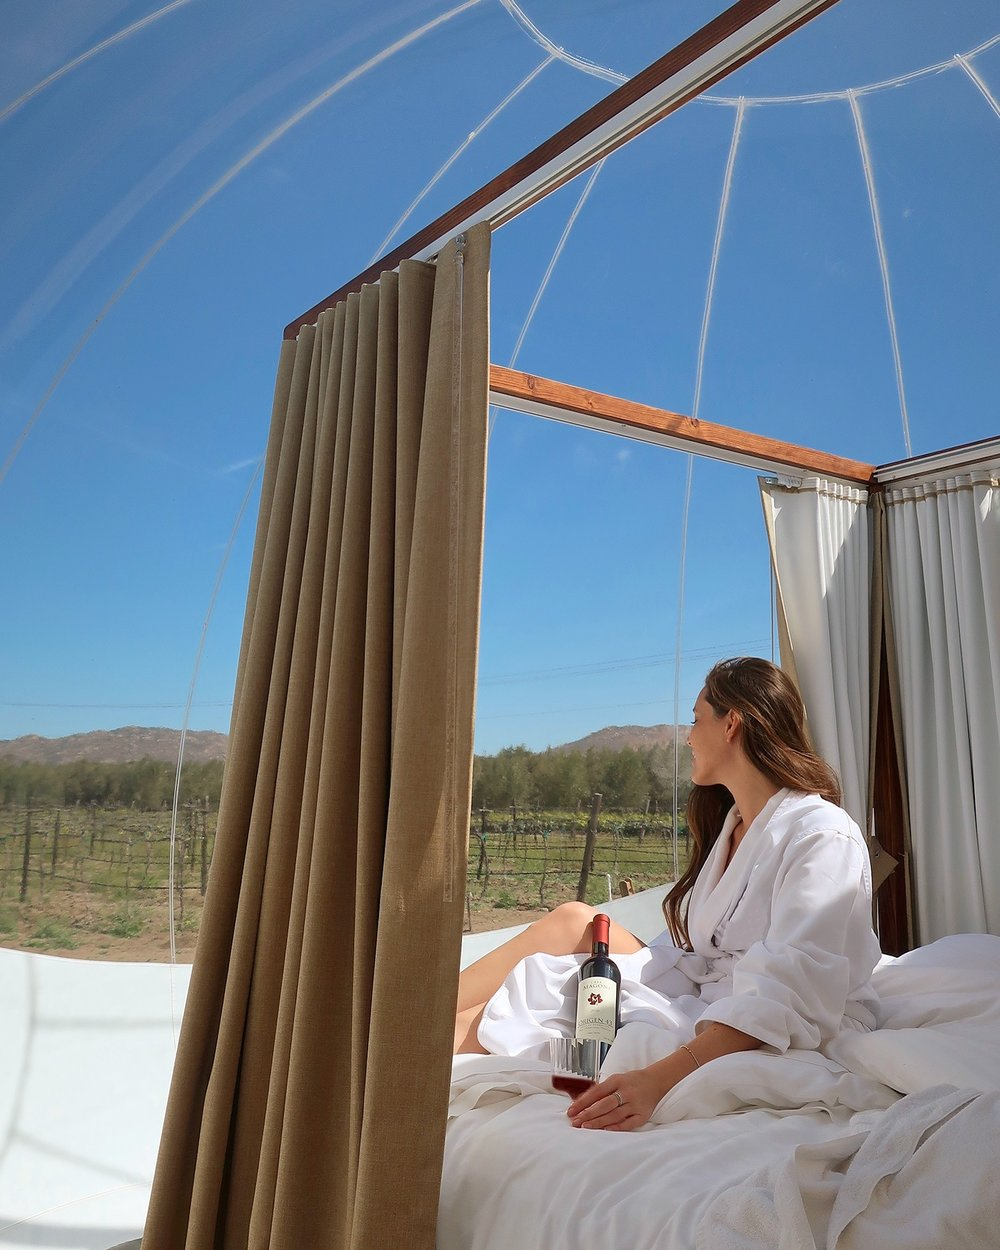 "Campera Hotel Burbuja has 10 ""bubble rooms and Suites"", allowing guests to connect to nature while admiring views of Valle de Guadalupe's vineyards."